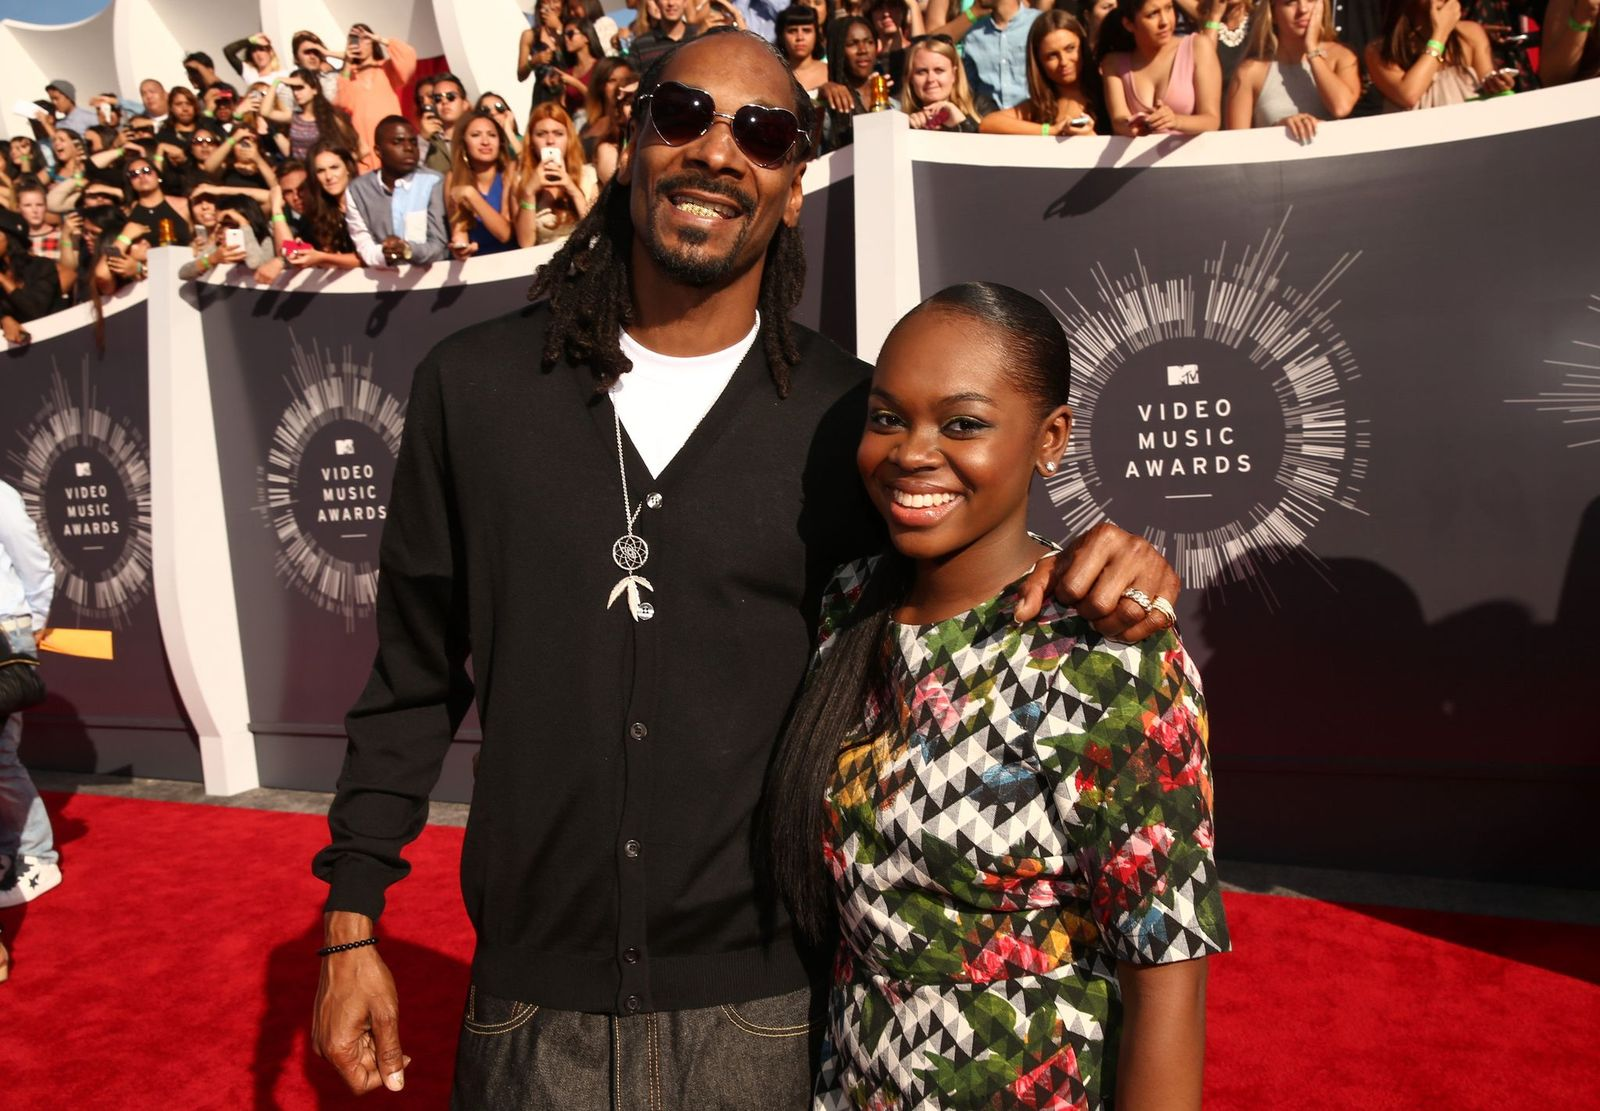 Recording artist Snoop Dogg and Cori Broadus at the 2014 MTV Video Music Awards at The Forum on August 24, 2014 | Photo: Getty Images